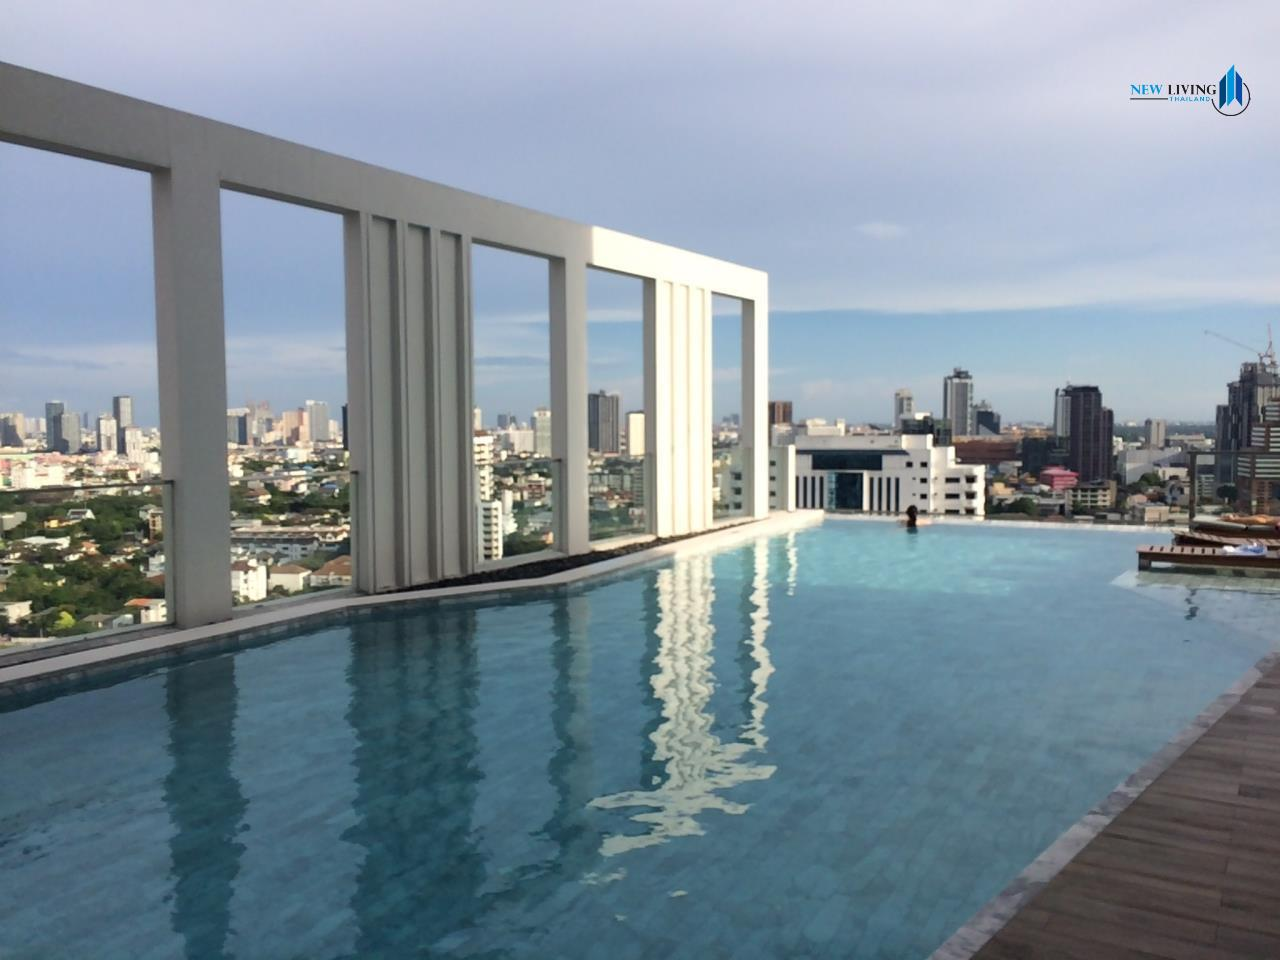 New Living Thailand Agency's **** Urgent Sale M Thonglor, 1 bedroom, beautiful unit, 29 sq.m. 6